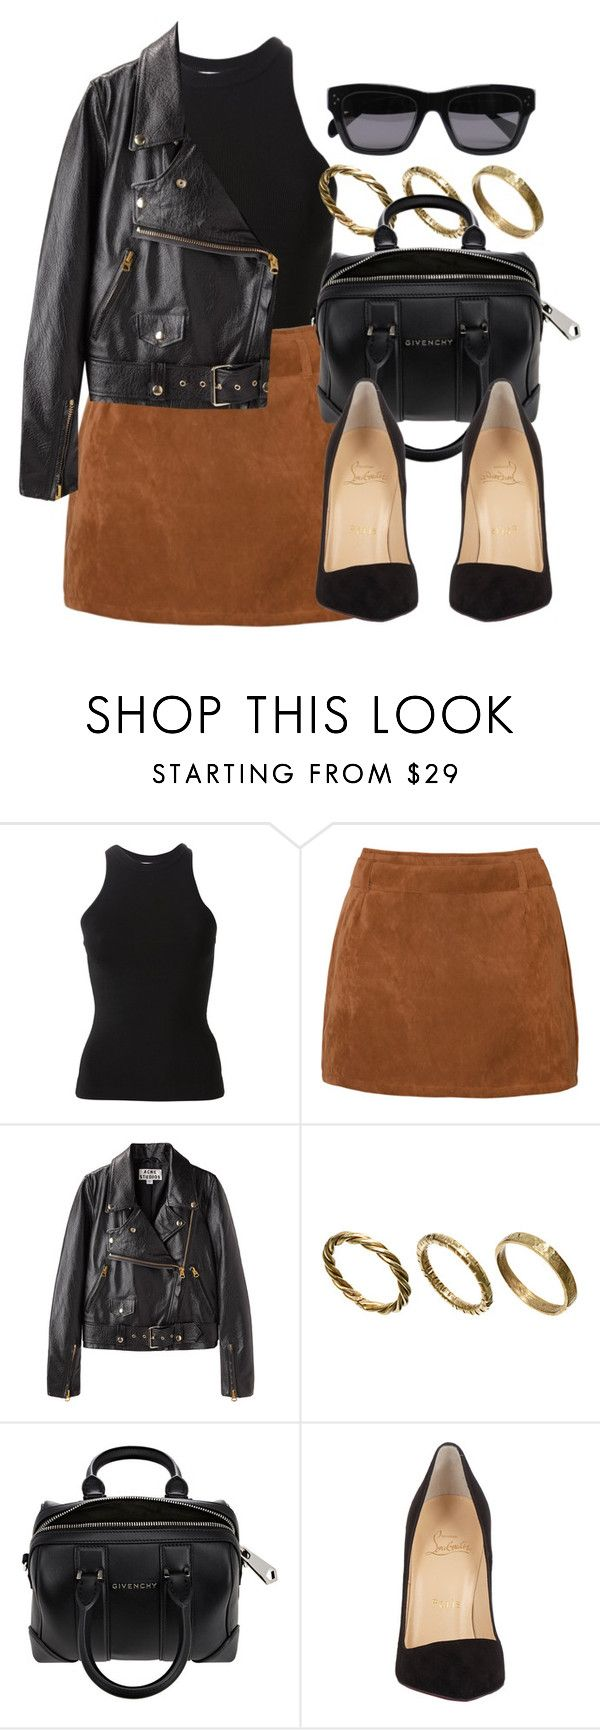 """Style #11279"" by vany-alvarado ❤ liked on Polyvore featuring T By Alexander Wang, Acne Studios, Made, Givenchy, Christian Louboutin and CÉLINE"